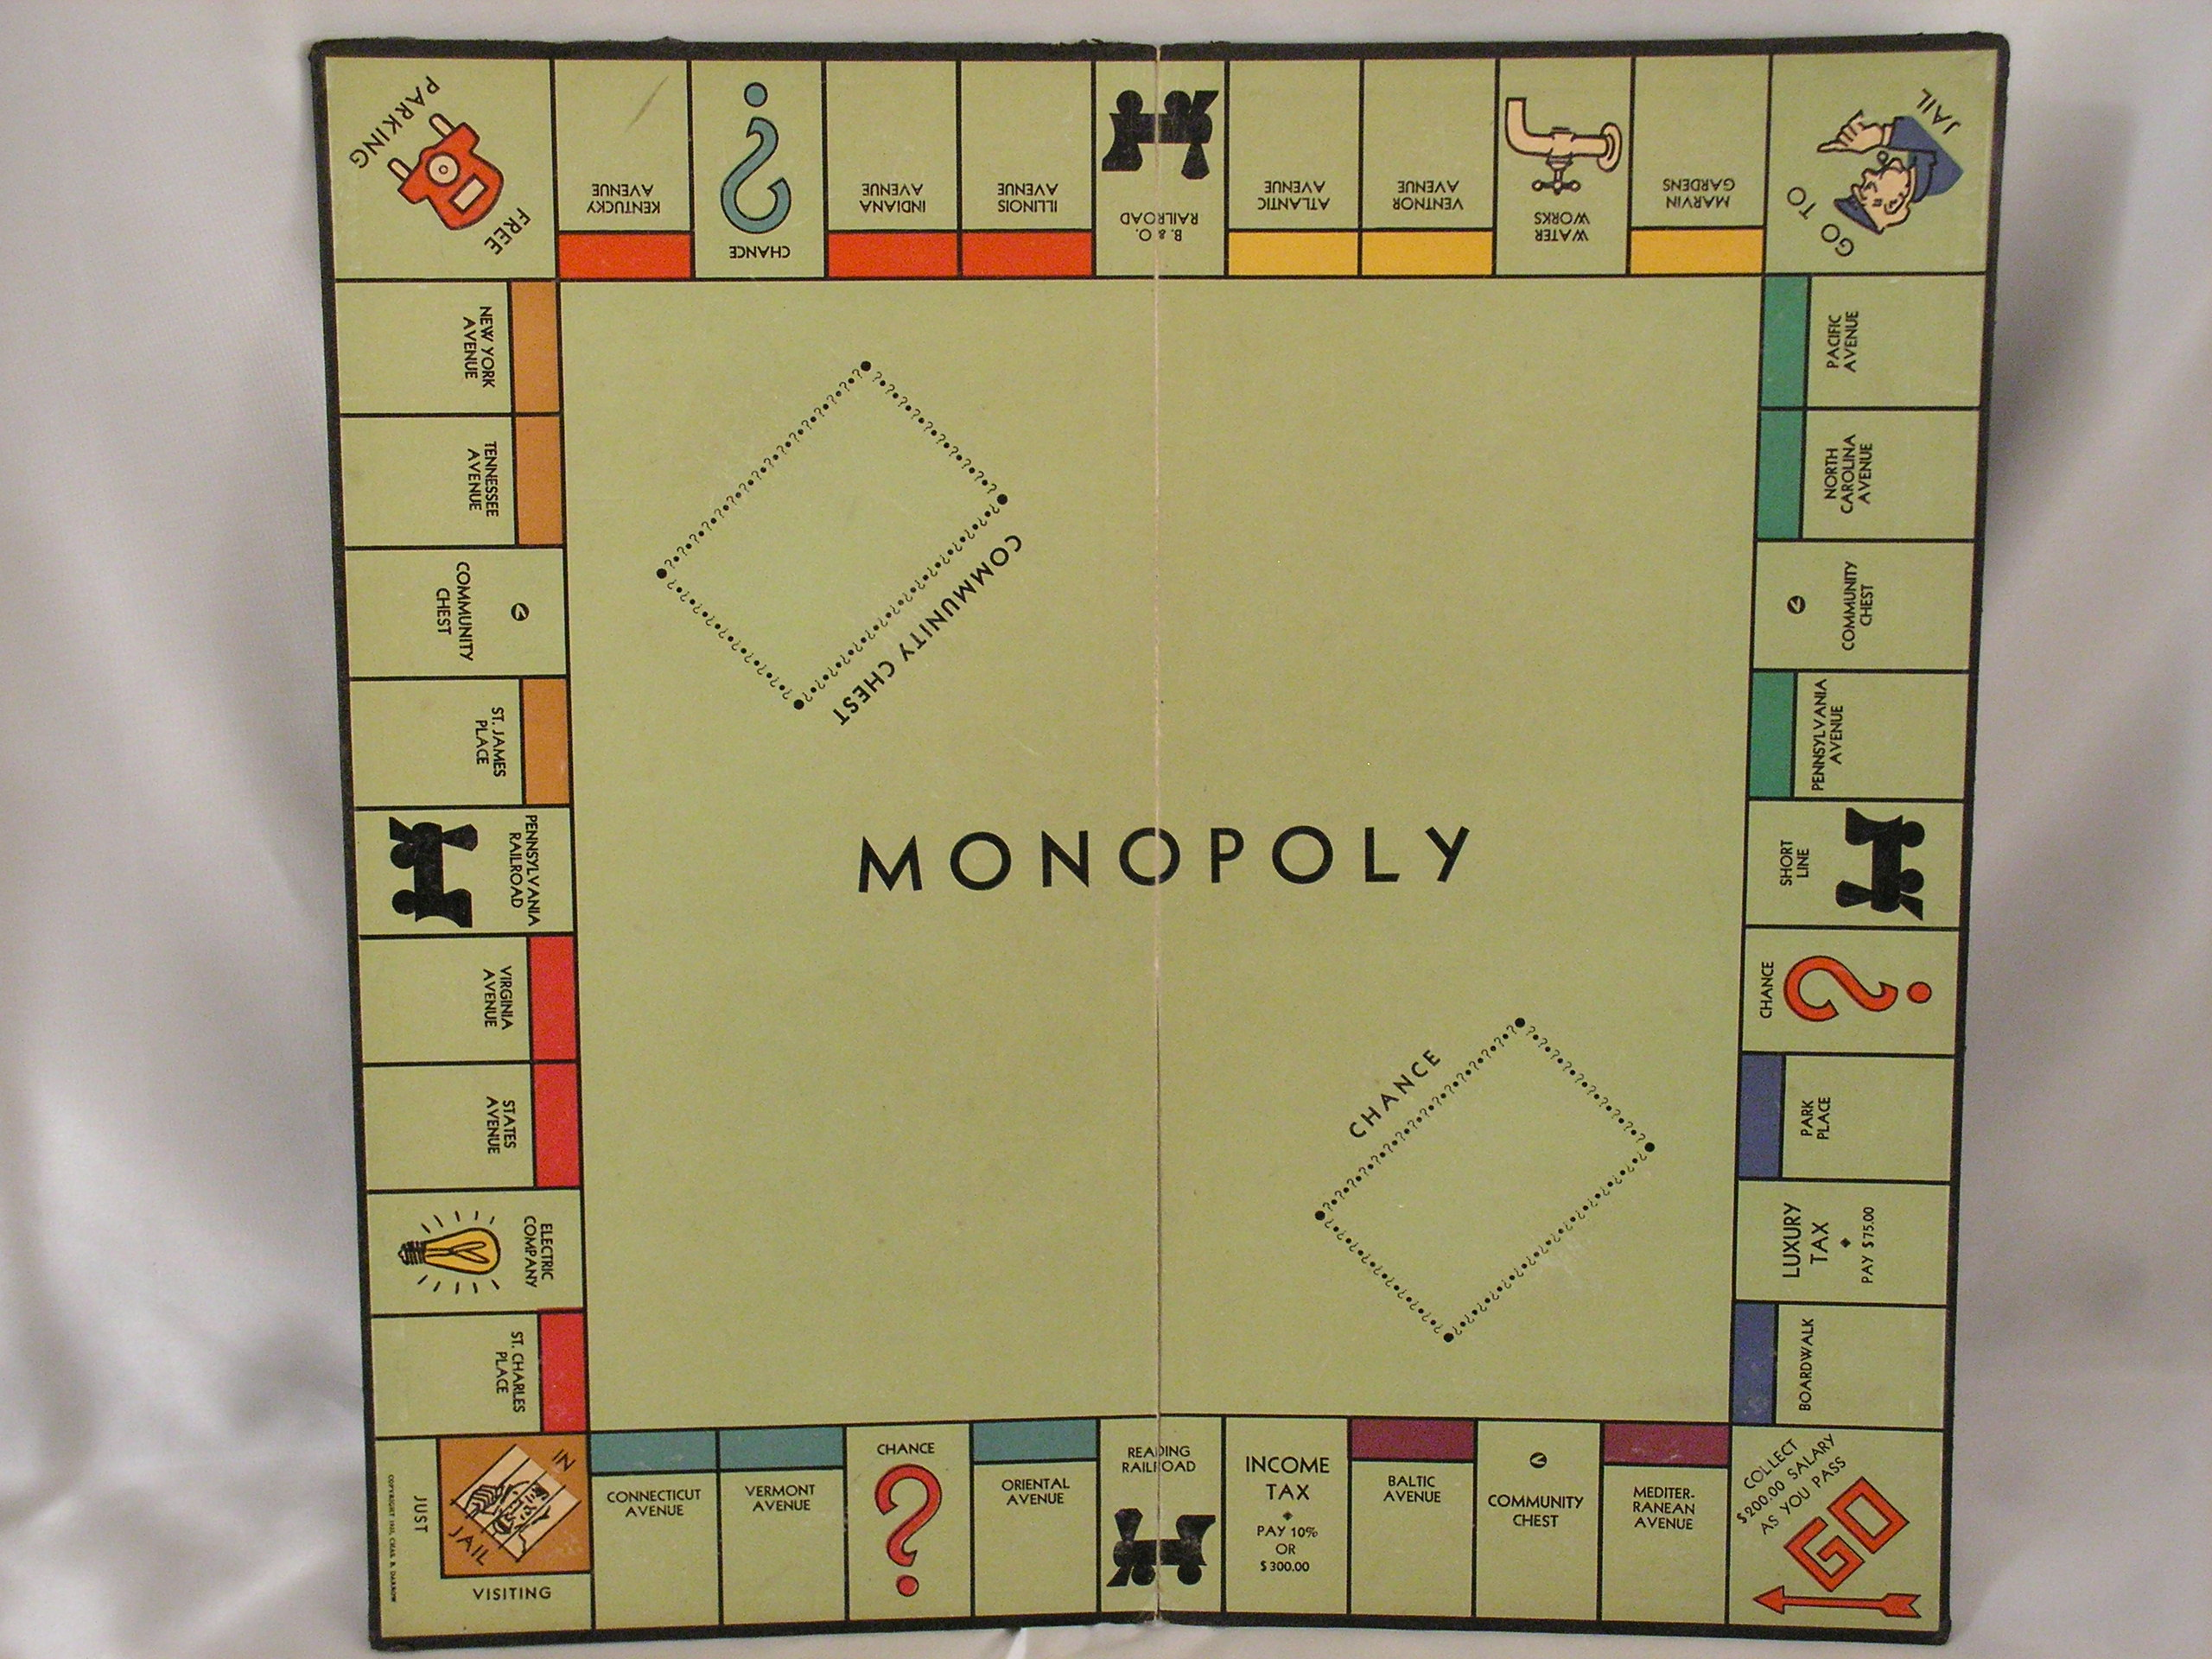 Darrow >> The Real History Of Monopoly Is A Lot More Controversial Than You'd Expect